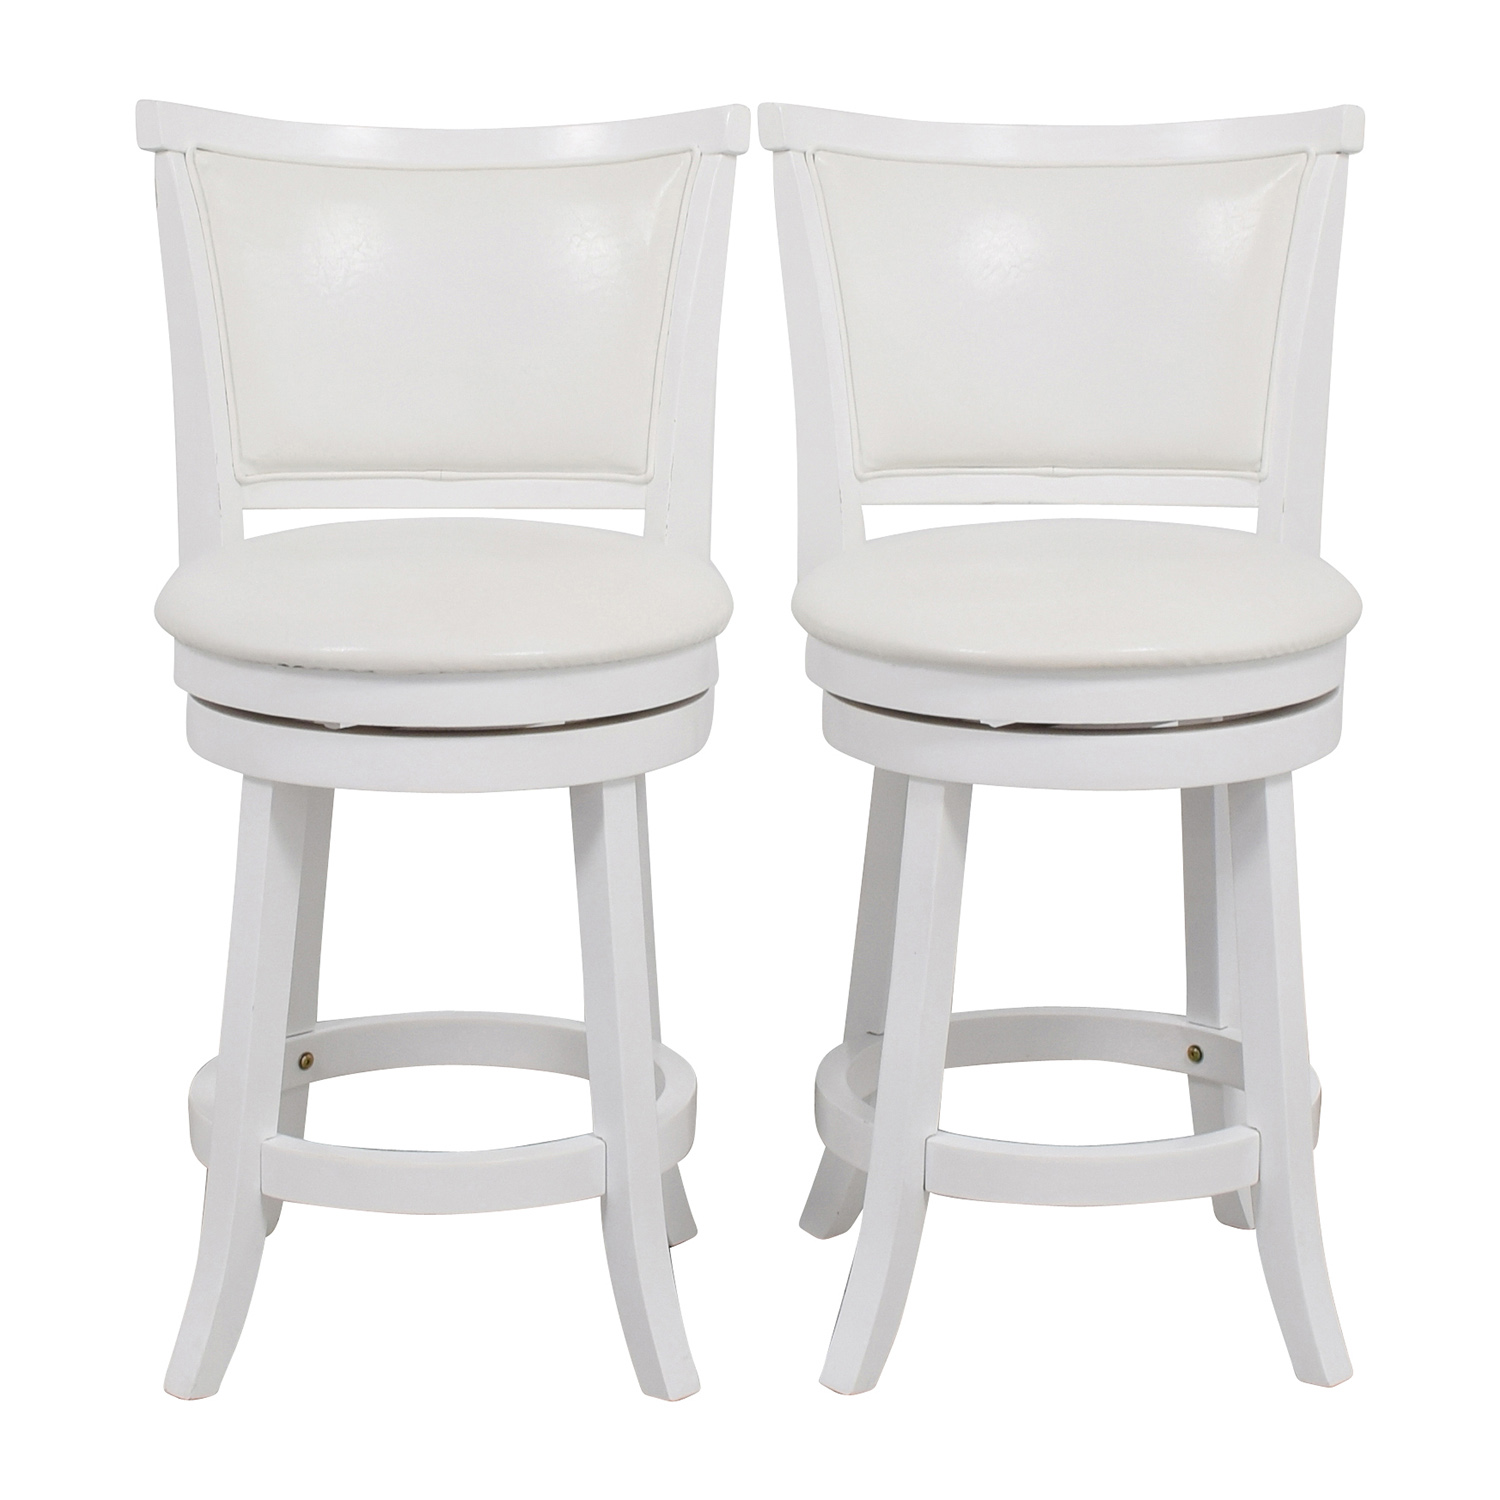 White Counter Height Chairs Stools Used Stools For Sale